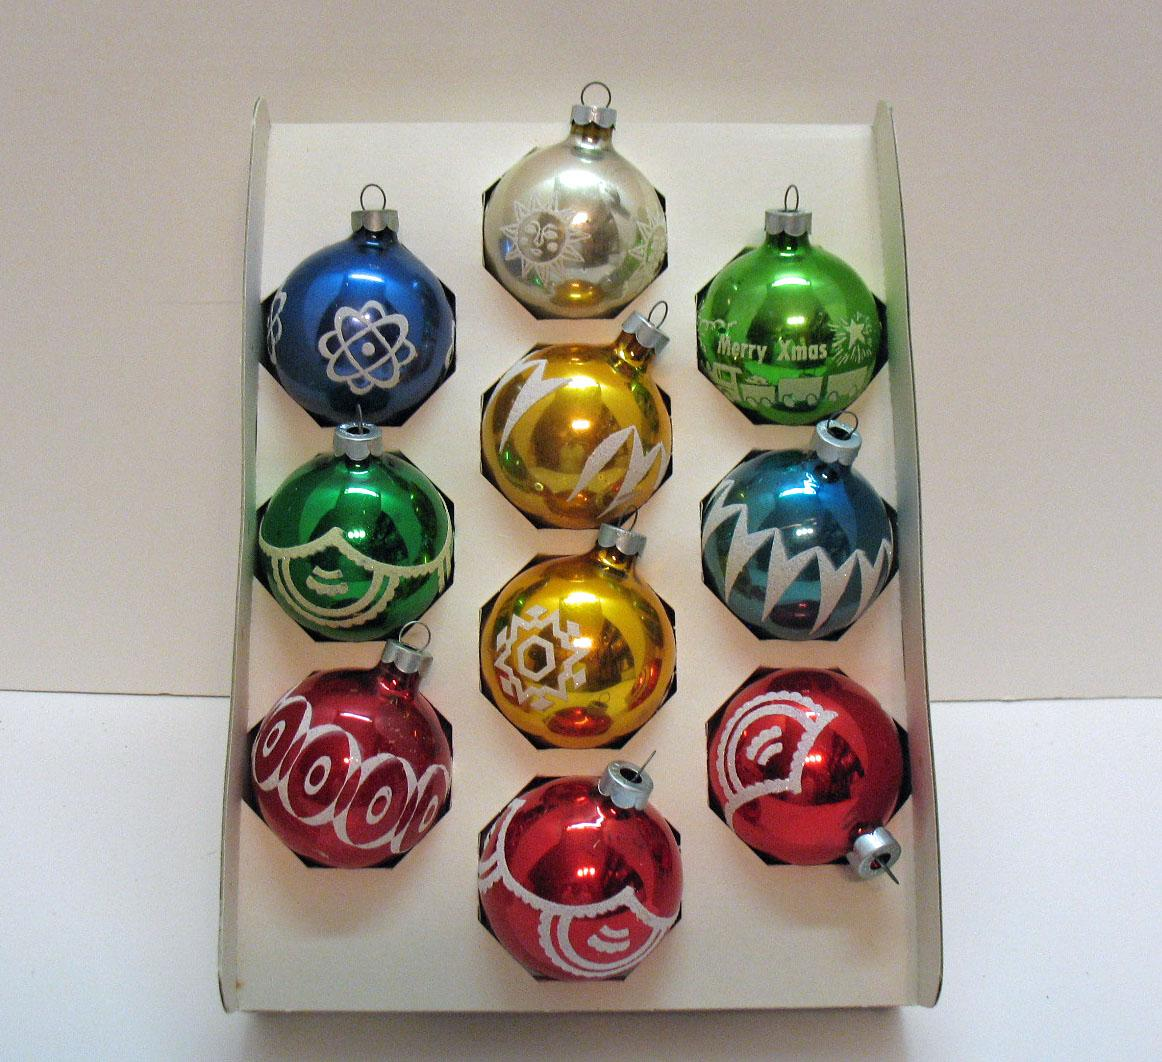 (10) Vintage Christmas Tree Glass Ornaments By Noelle USA